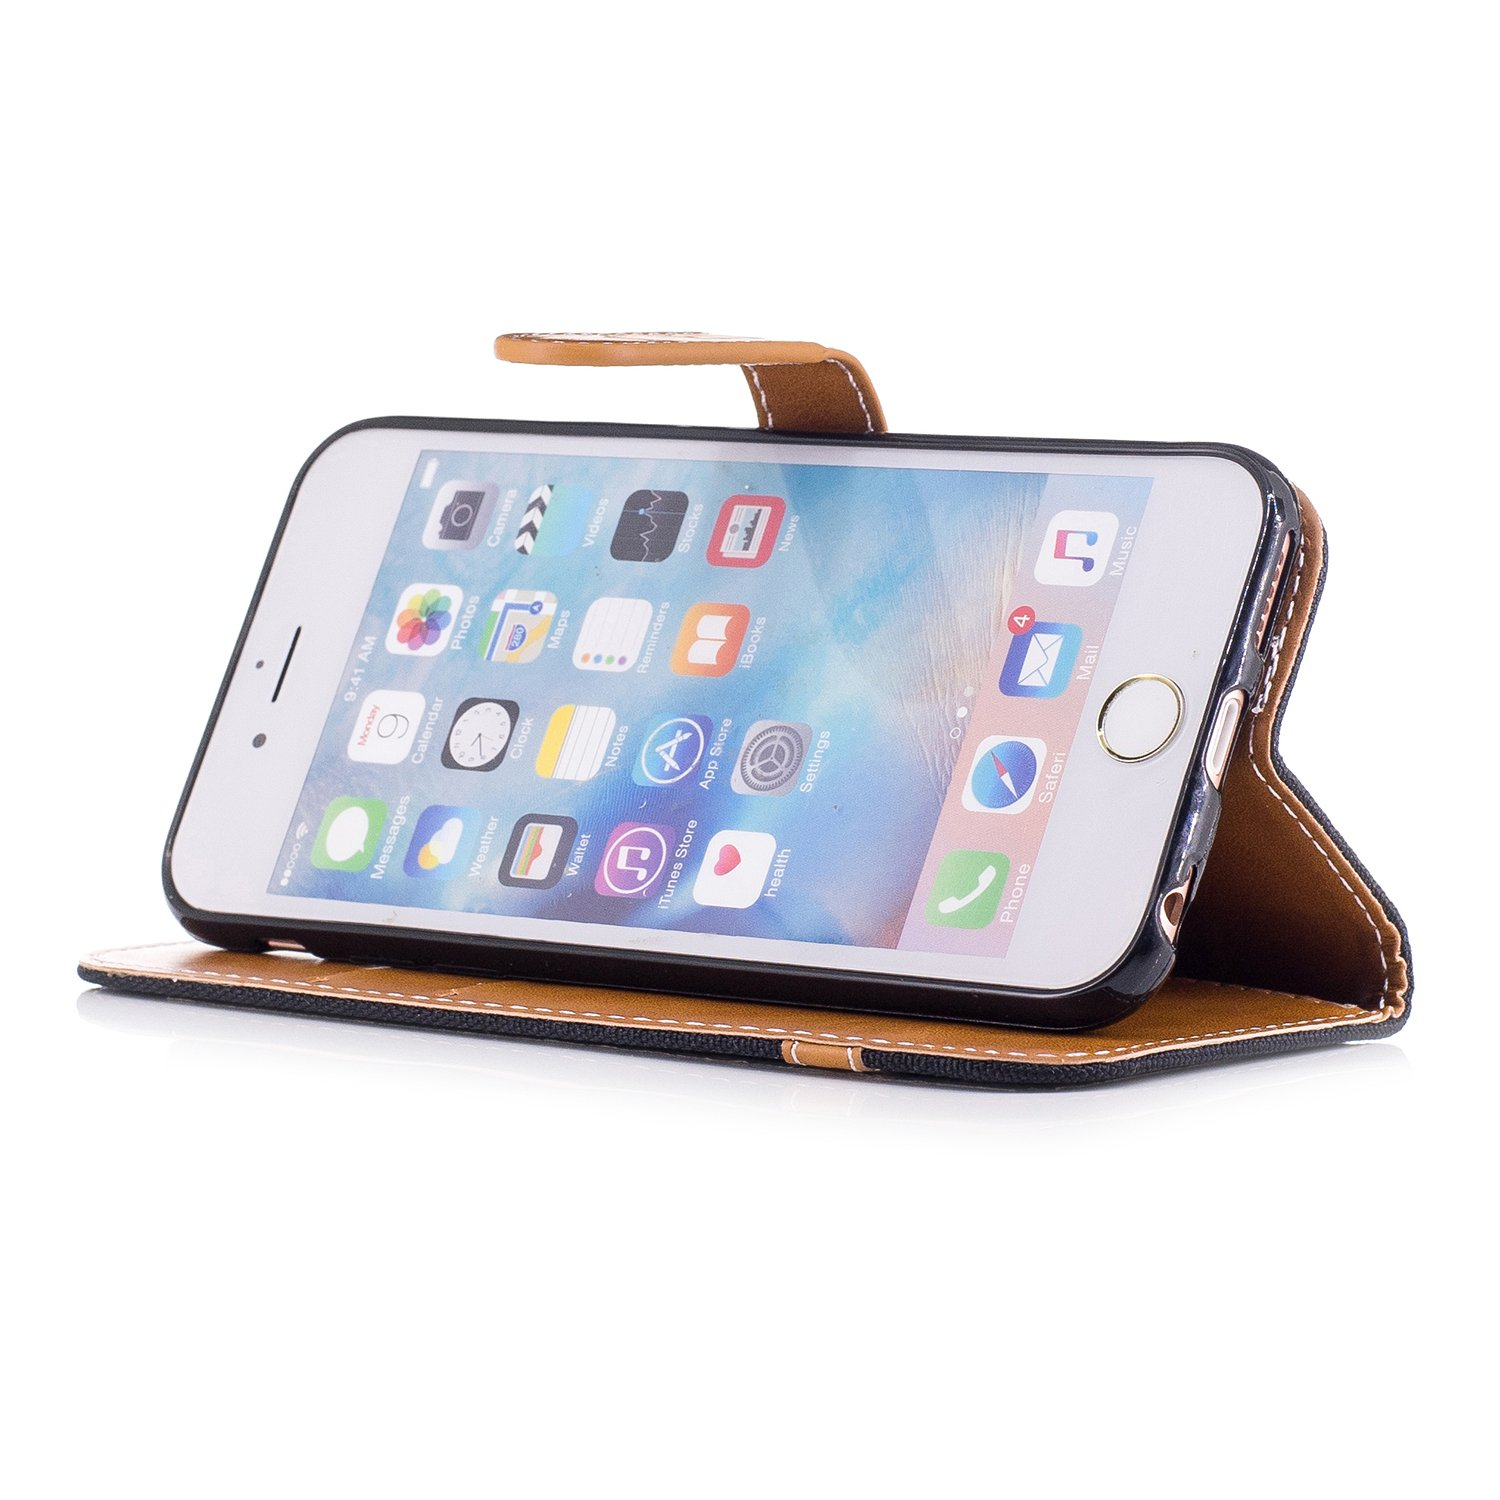 iPhone 6S Case,iPhone 6 Case,iPhone 6S//6 Case,ikasus Pure Denim Canvas Premium PU Leather Fold Flip Wallet Case Cover with Card Slots Stand Protective TPU Inner Case Cover for iPhone 6S//6,Black